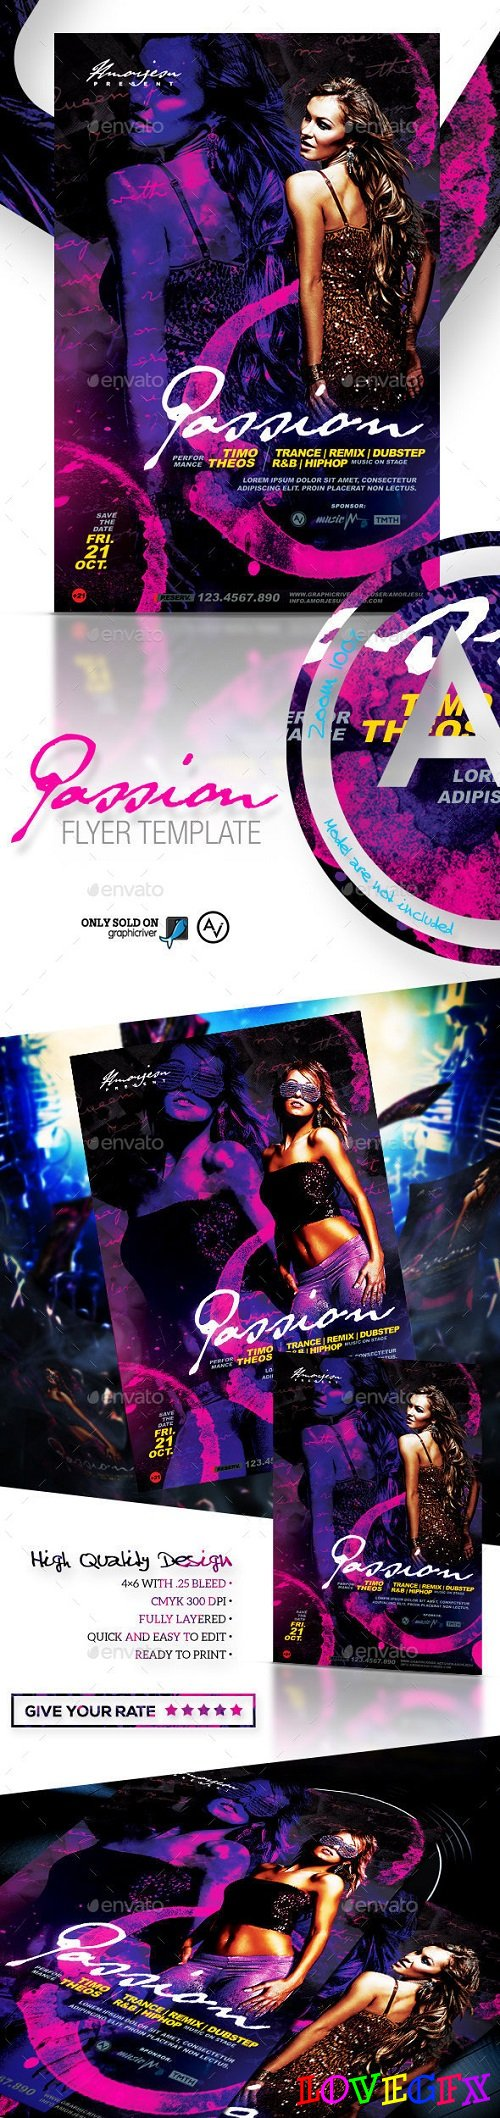 Passion Flyer Template 12047025